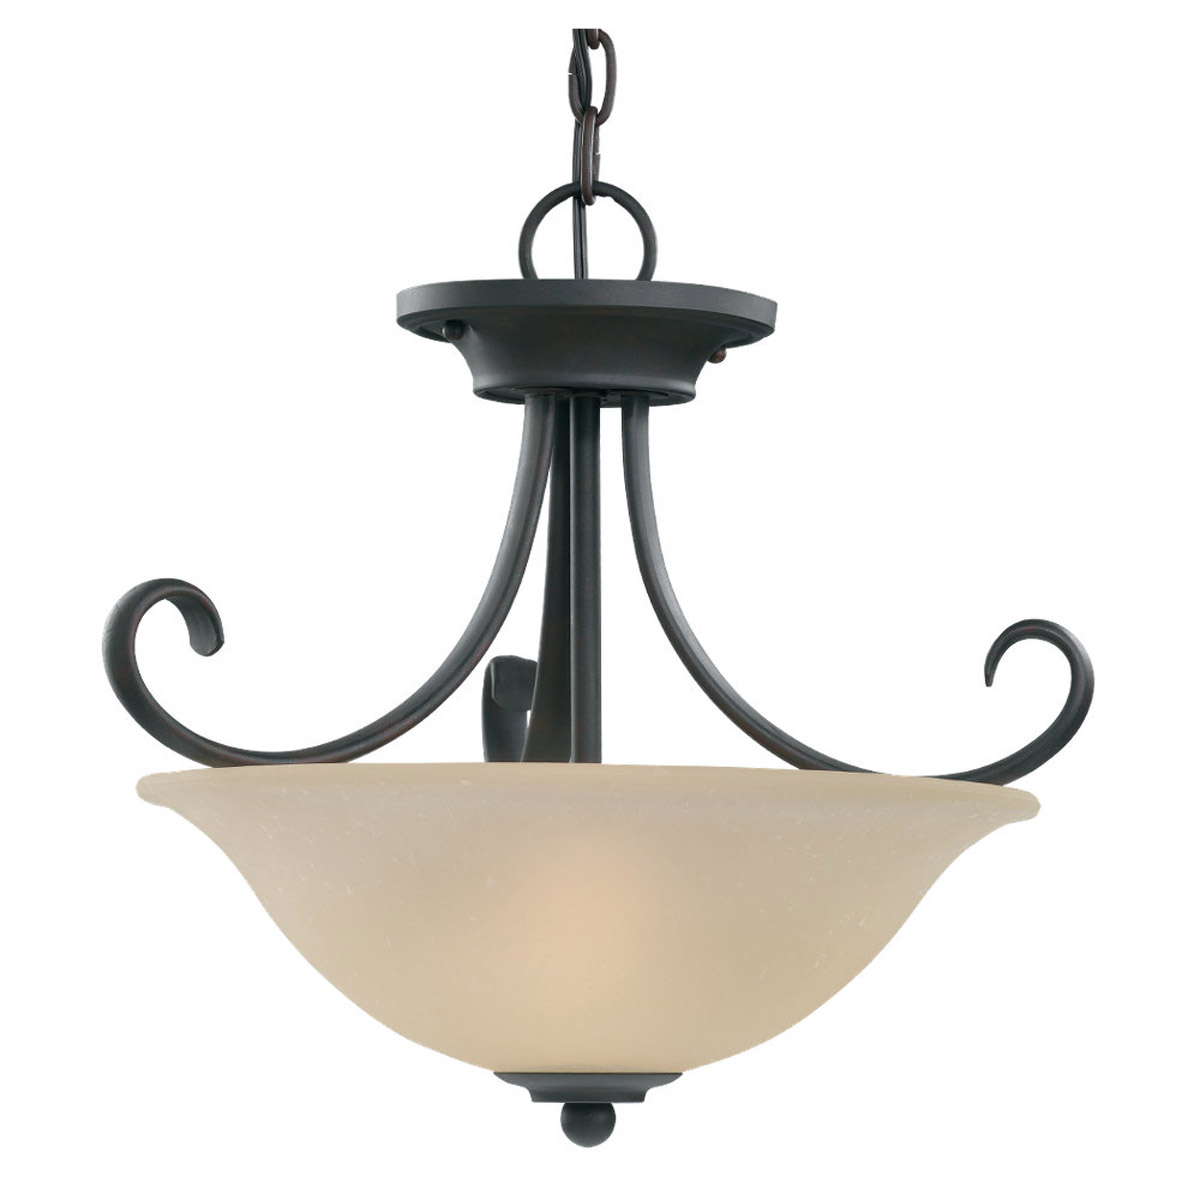 Sea Gull Lighting Del Prato 2 Light Pendant Convertible in Chestnut Bronze 51120-820 photo